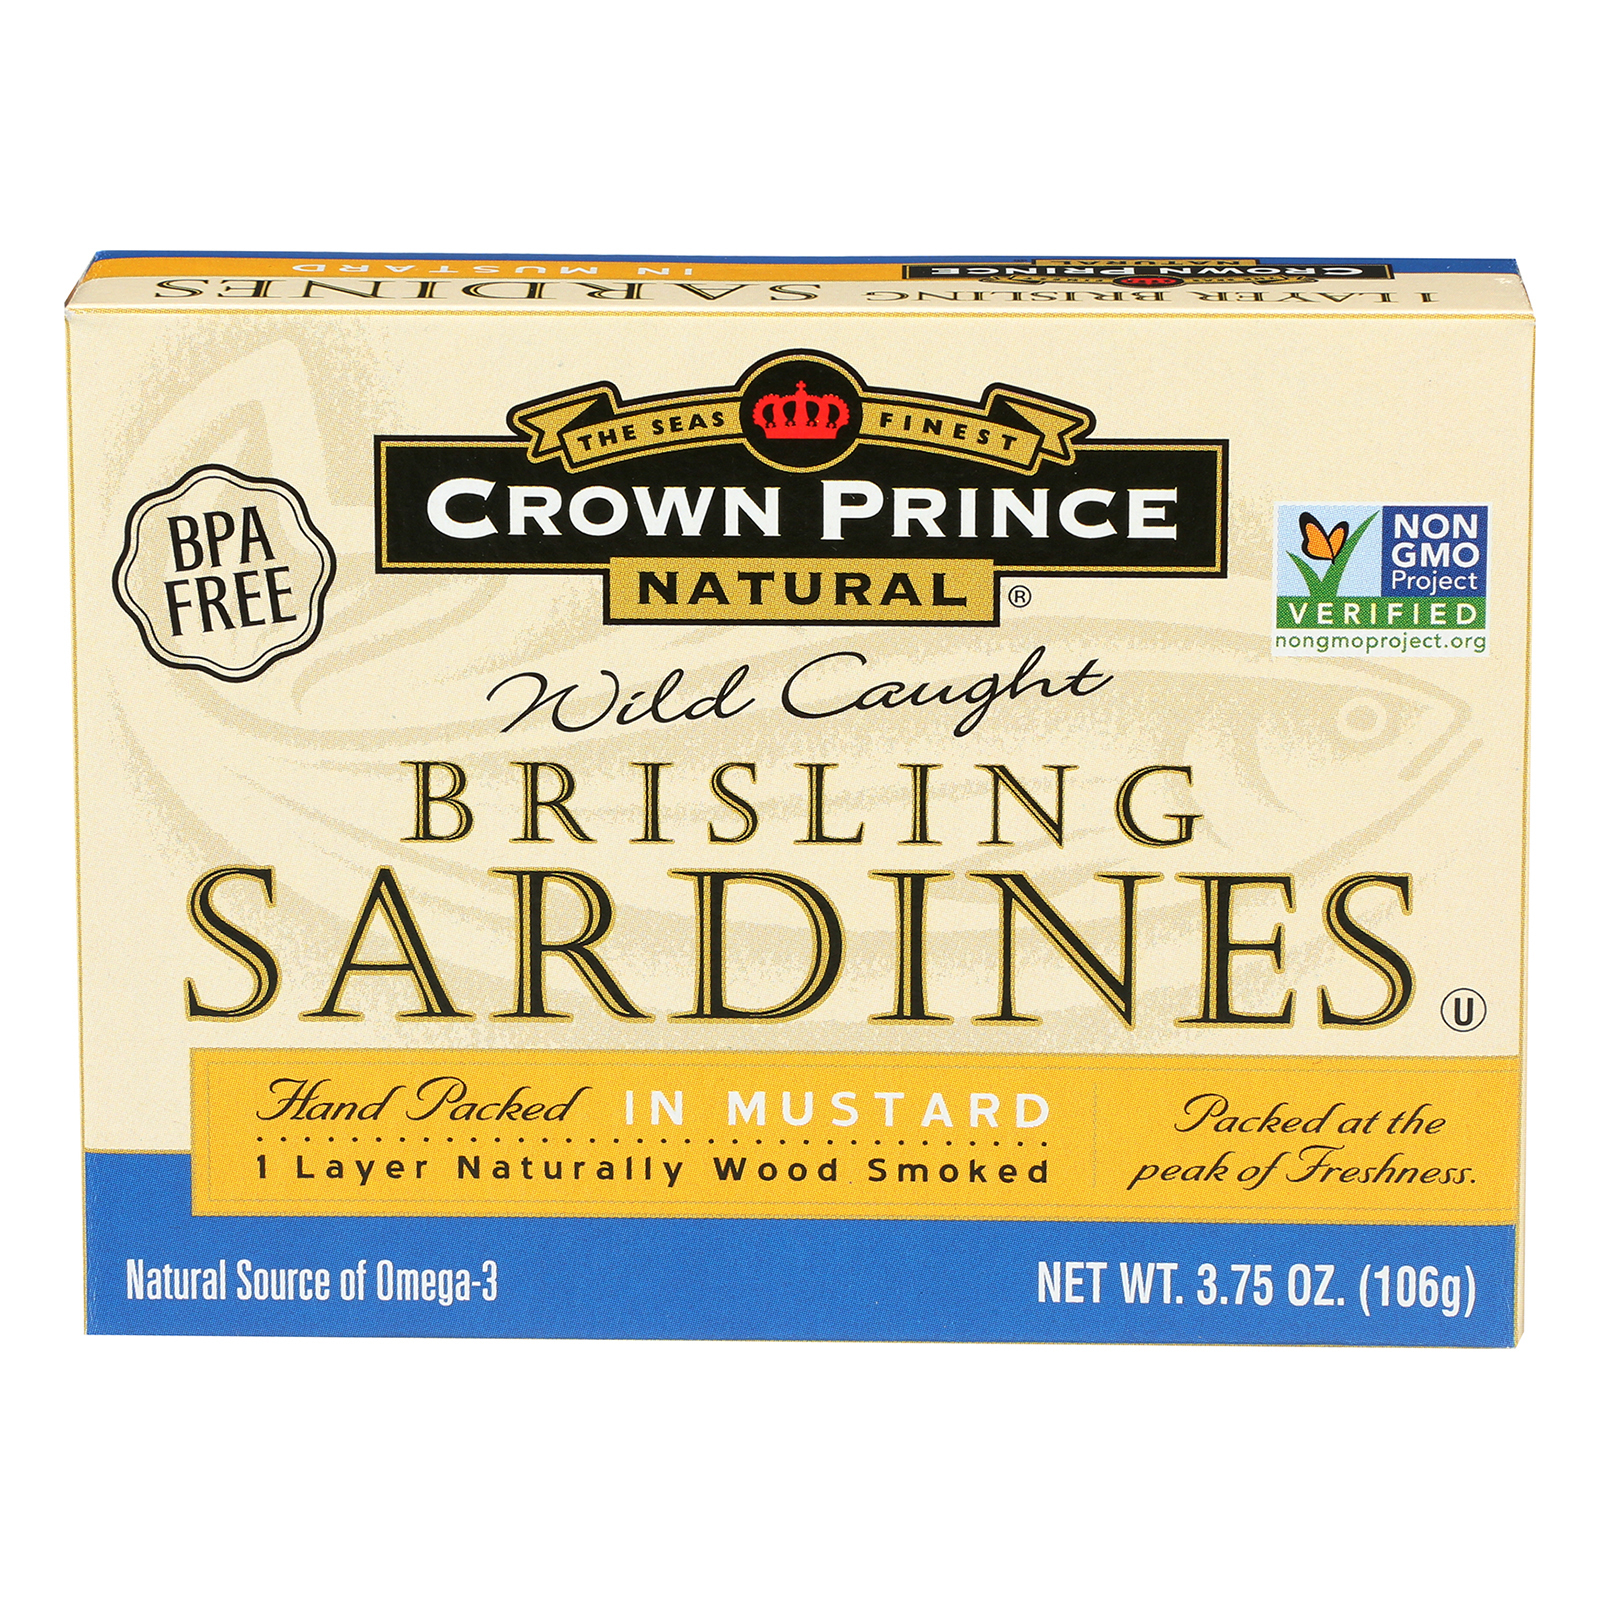 Crown Prince Brisling Sardines In Mustard - Case of 12 - 3.75 oz.